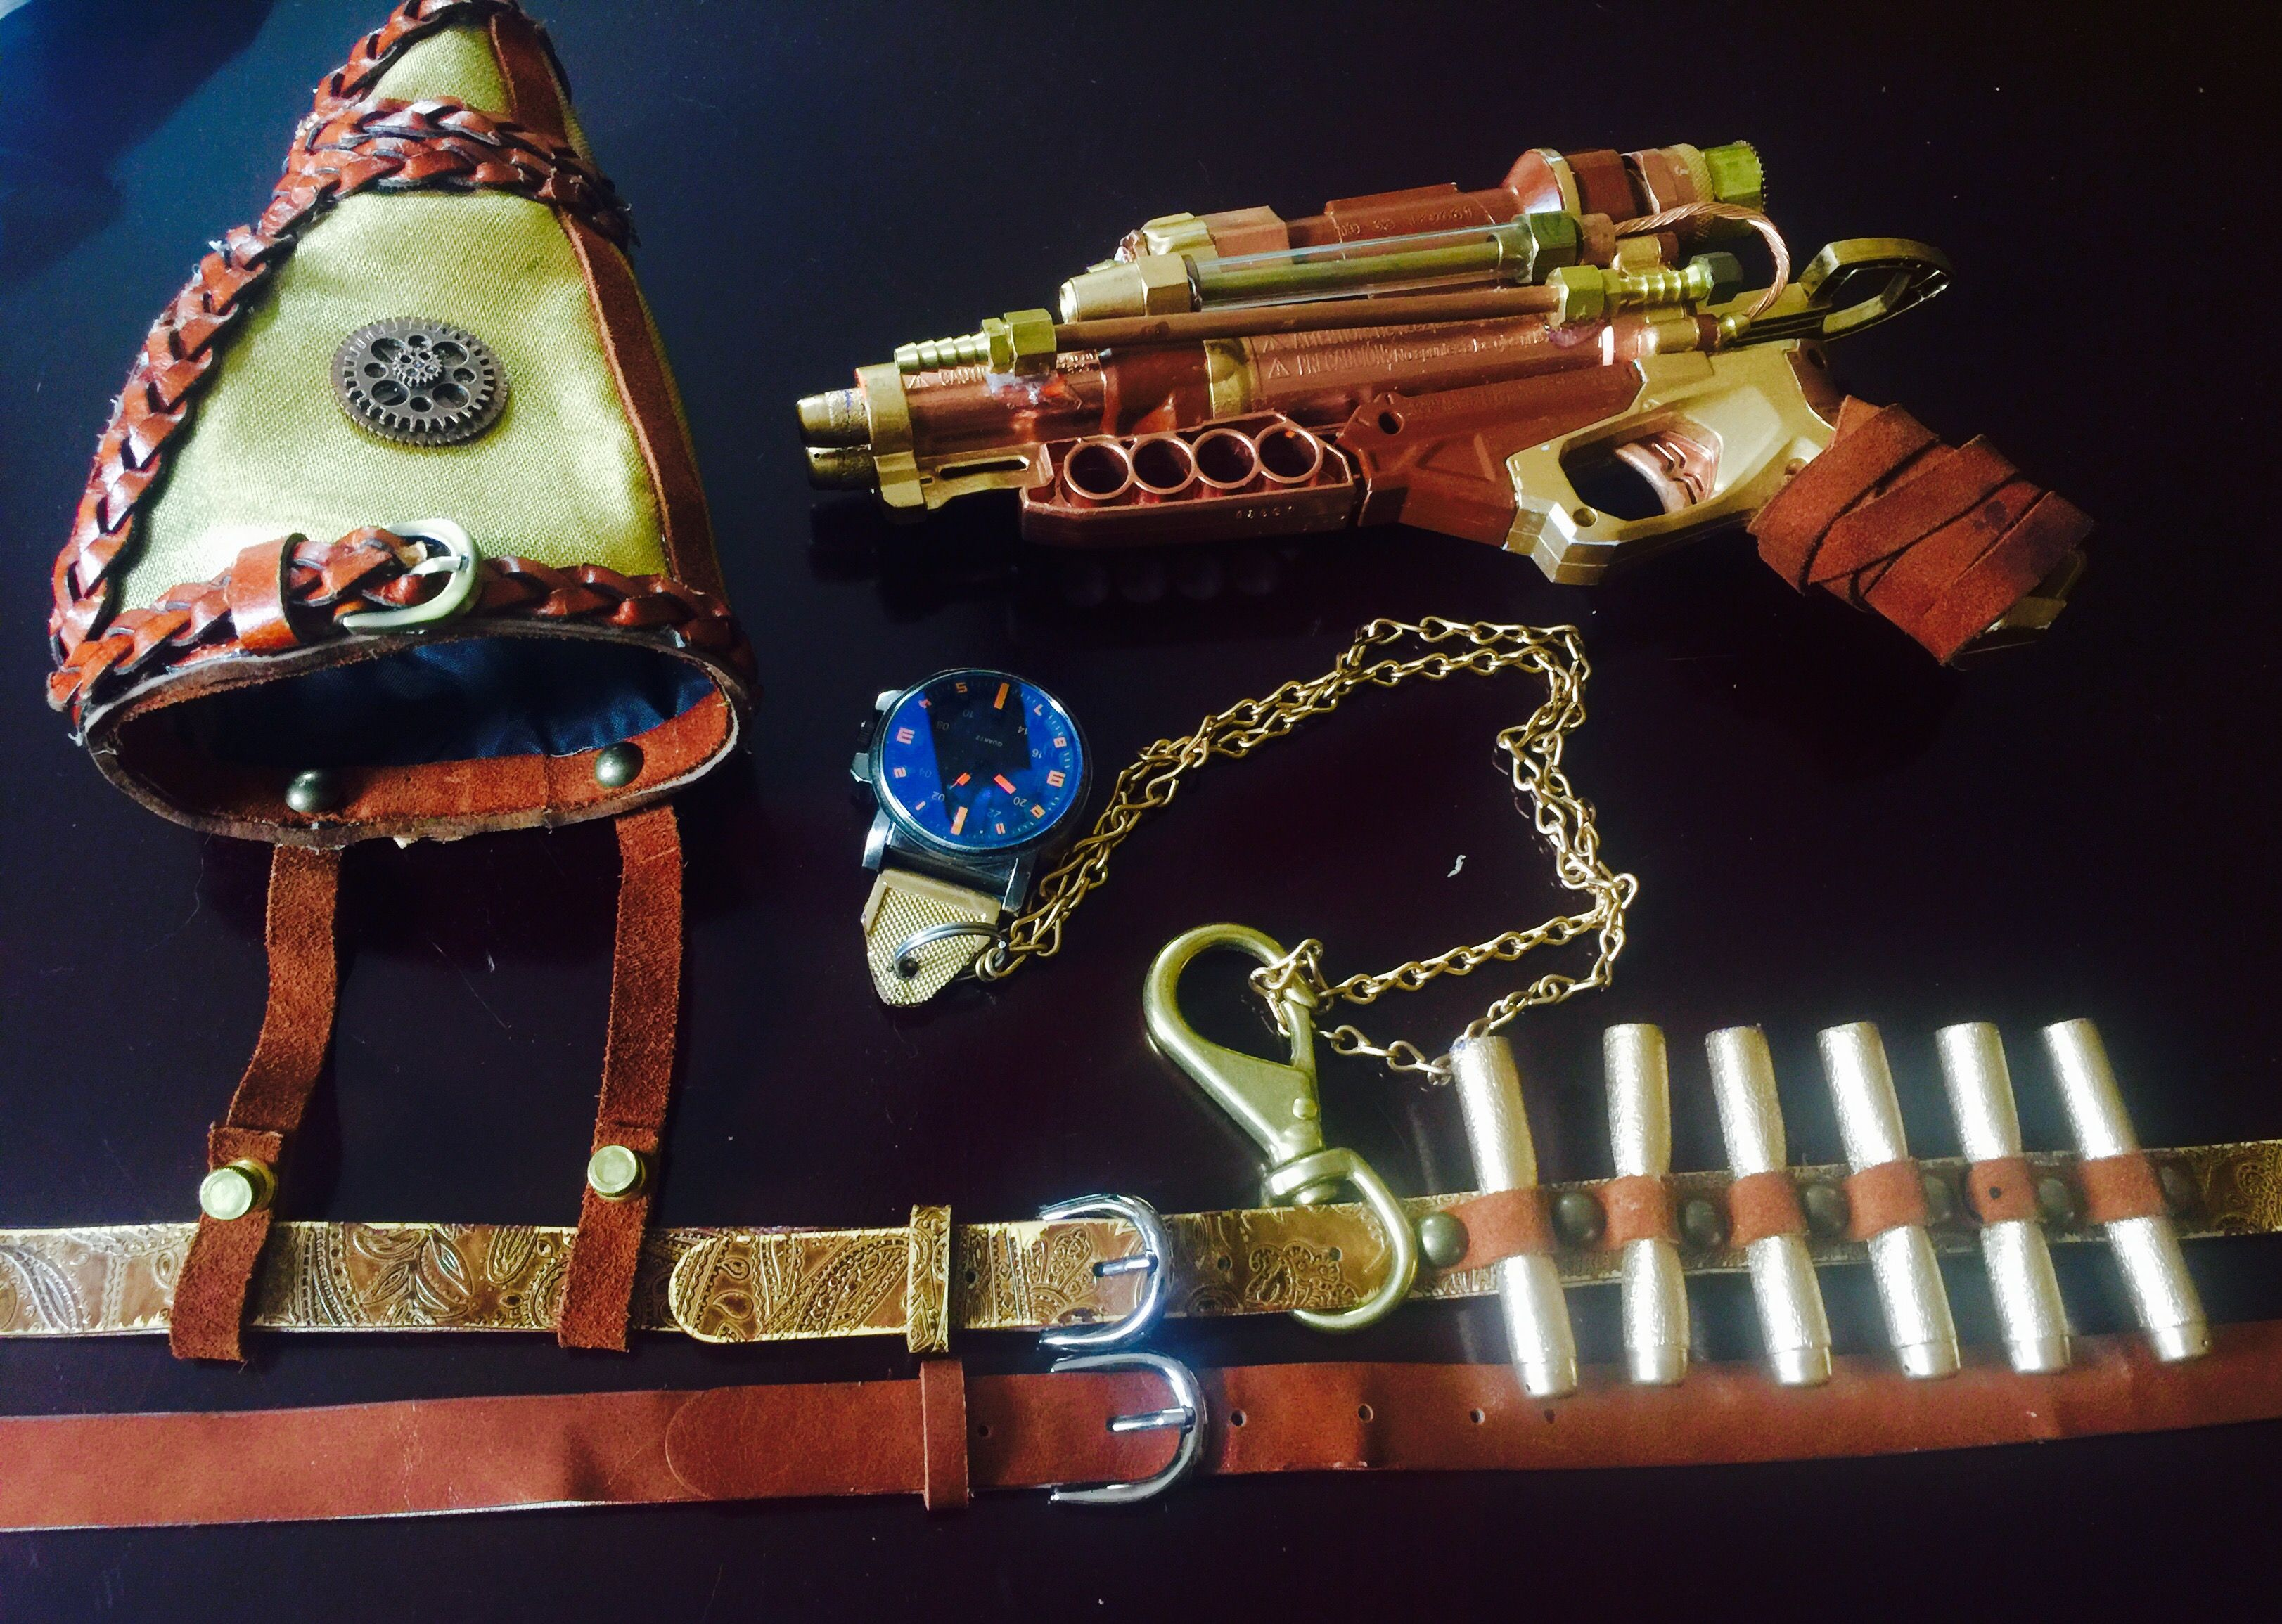 Steampunk gun and holster, ammo belt, time peace.